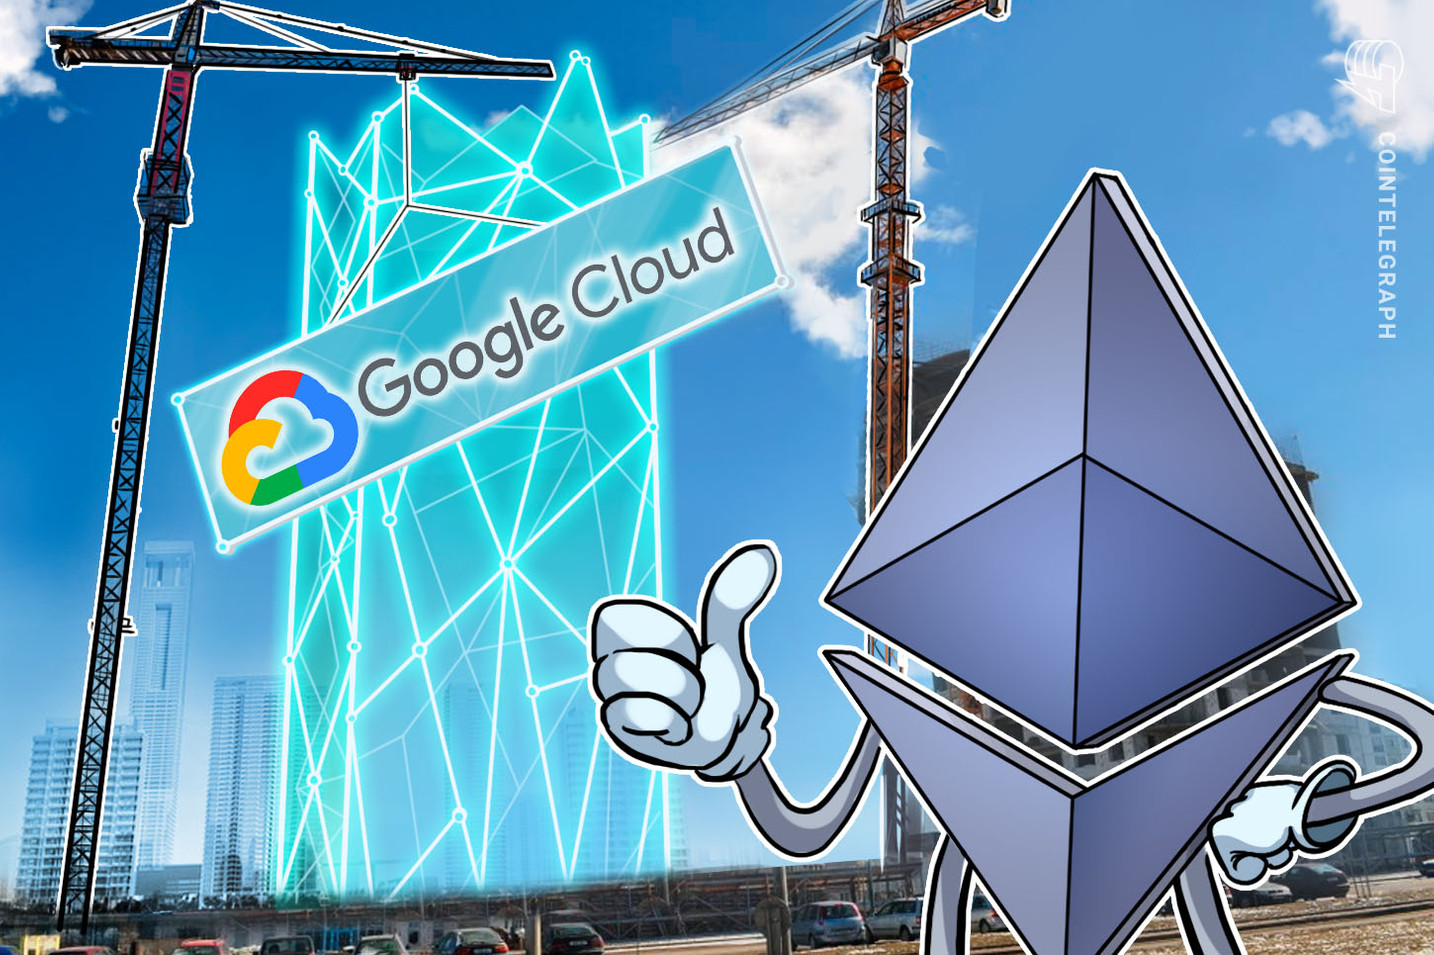 Google Cloud Integrates Chainlink Oracles in Analytics Data Warehouse With ETH DApp Support